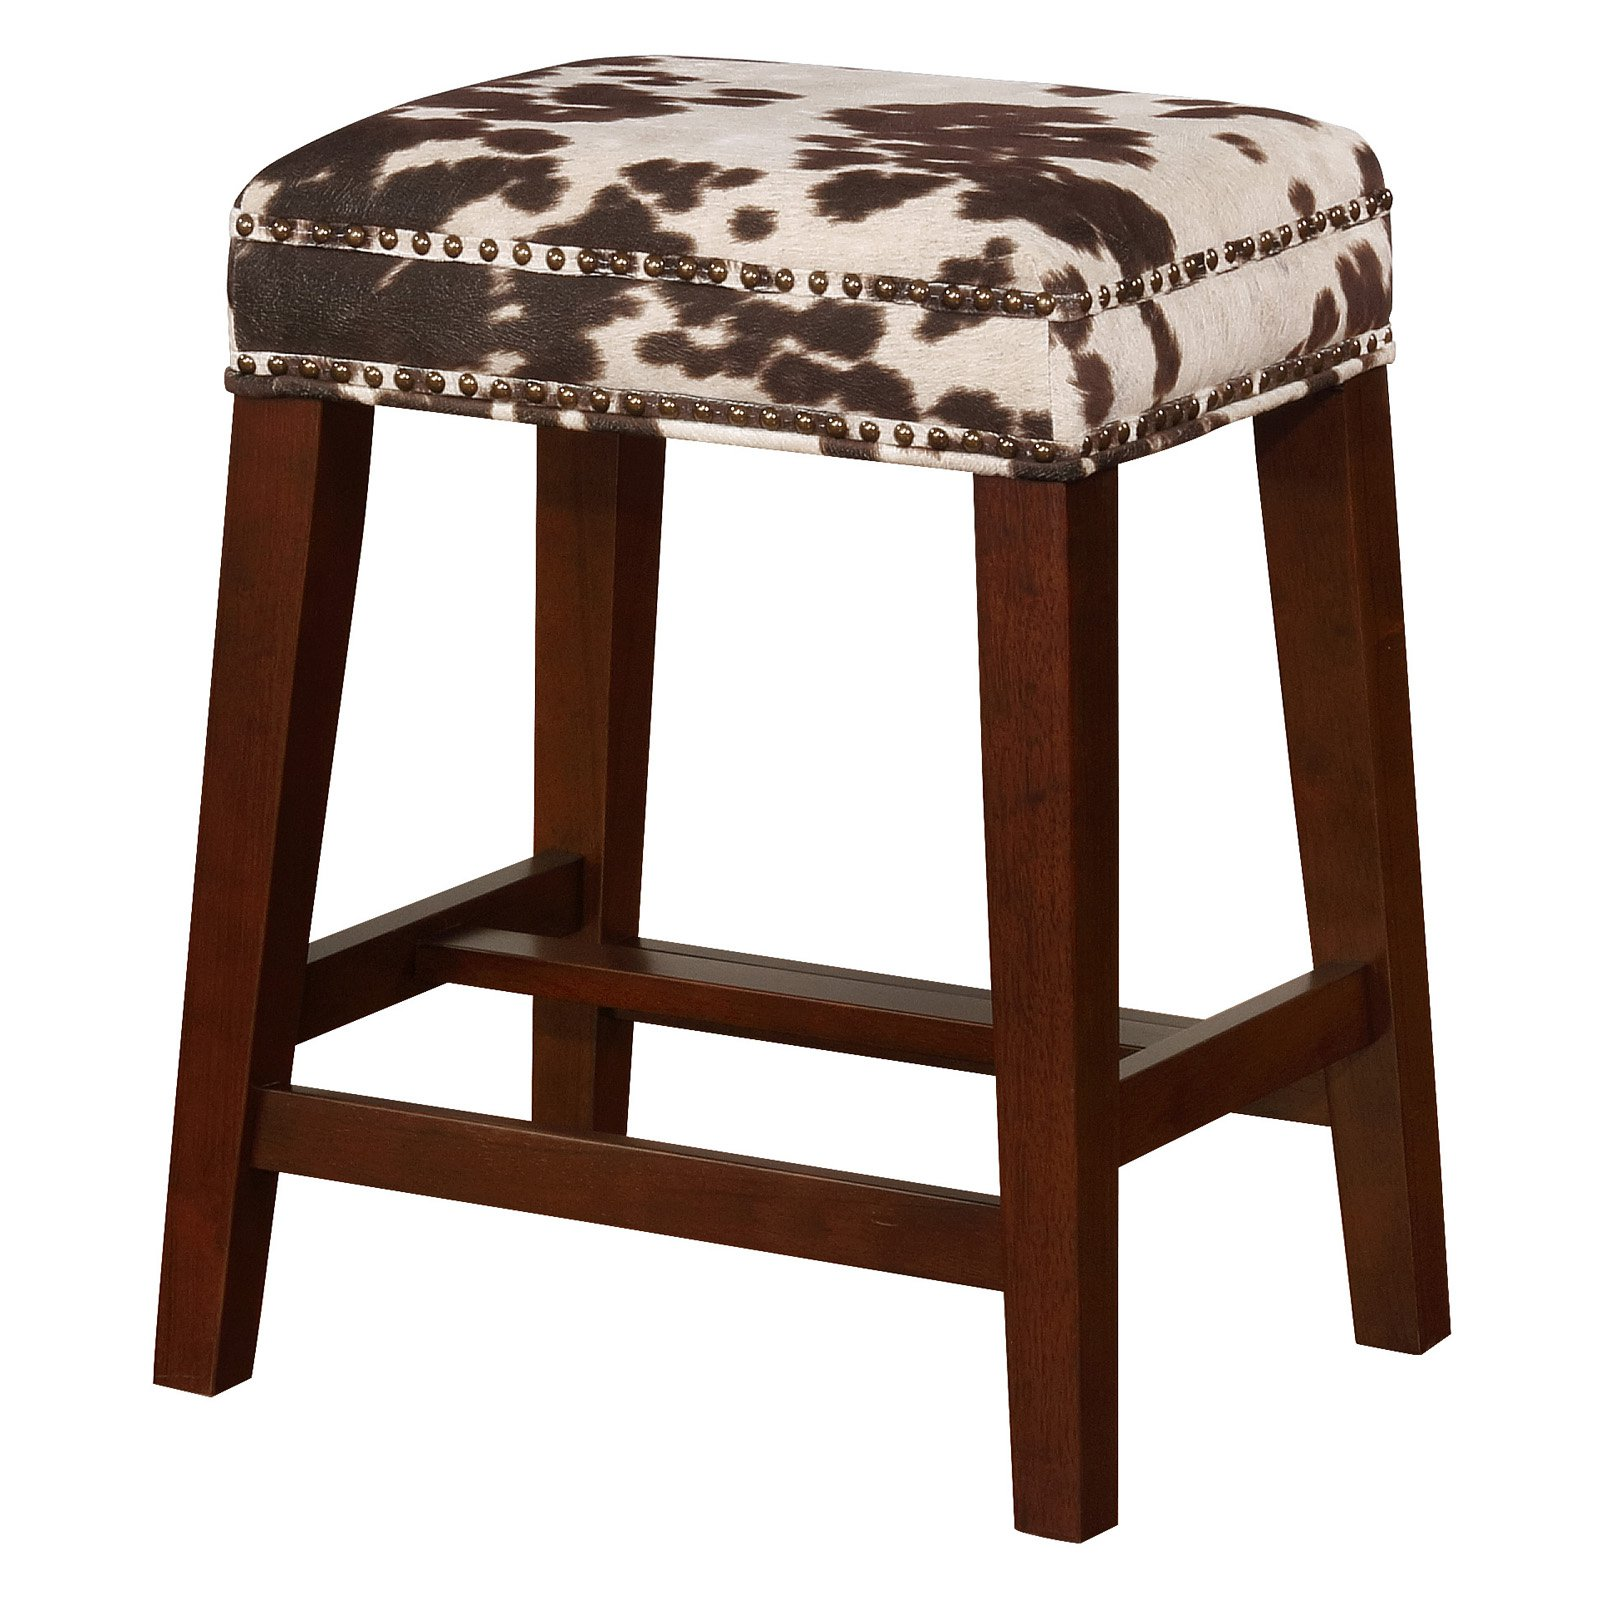 Linon Walt Counter Stool 24 5 Inch Seat Height Brown Cow